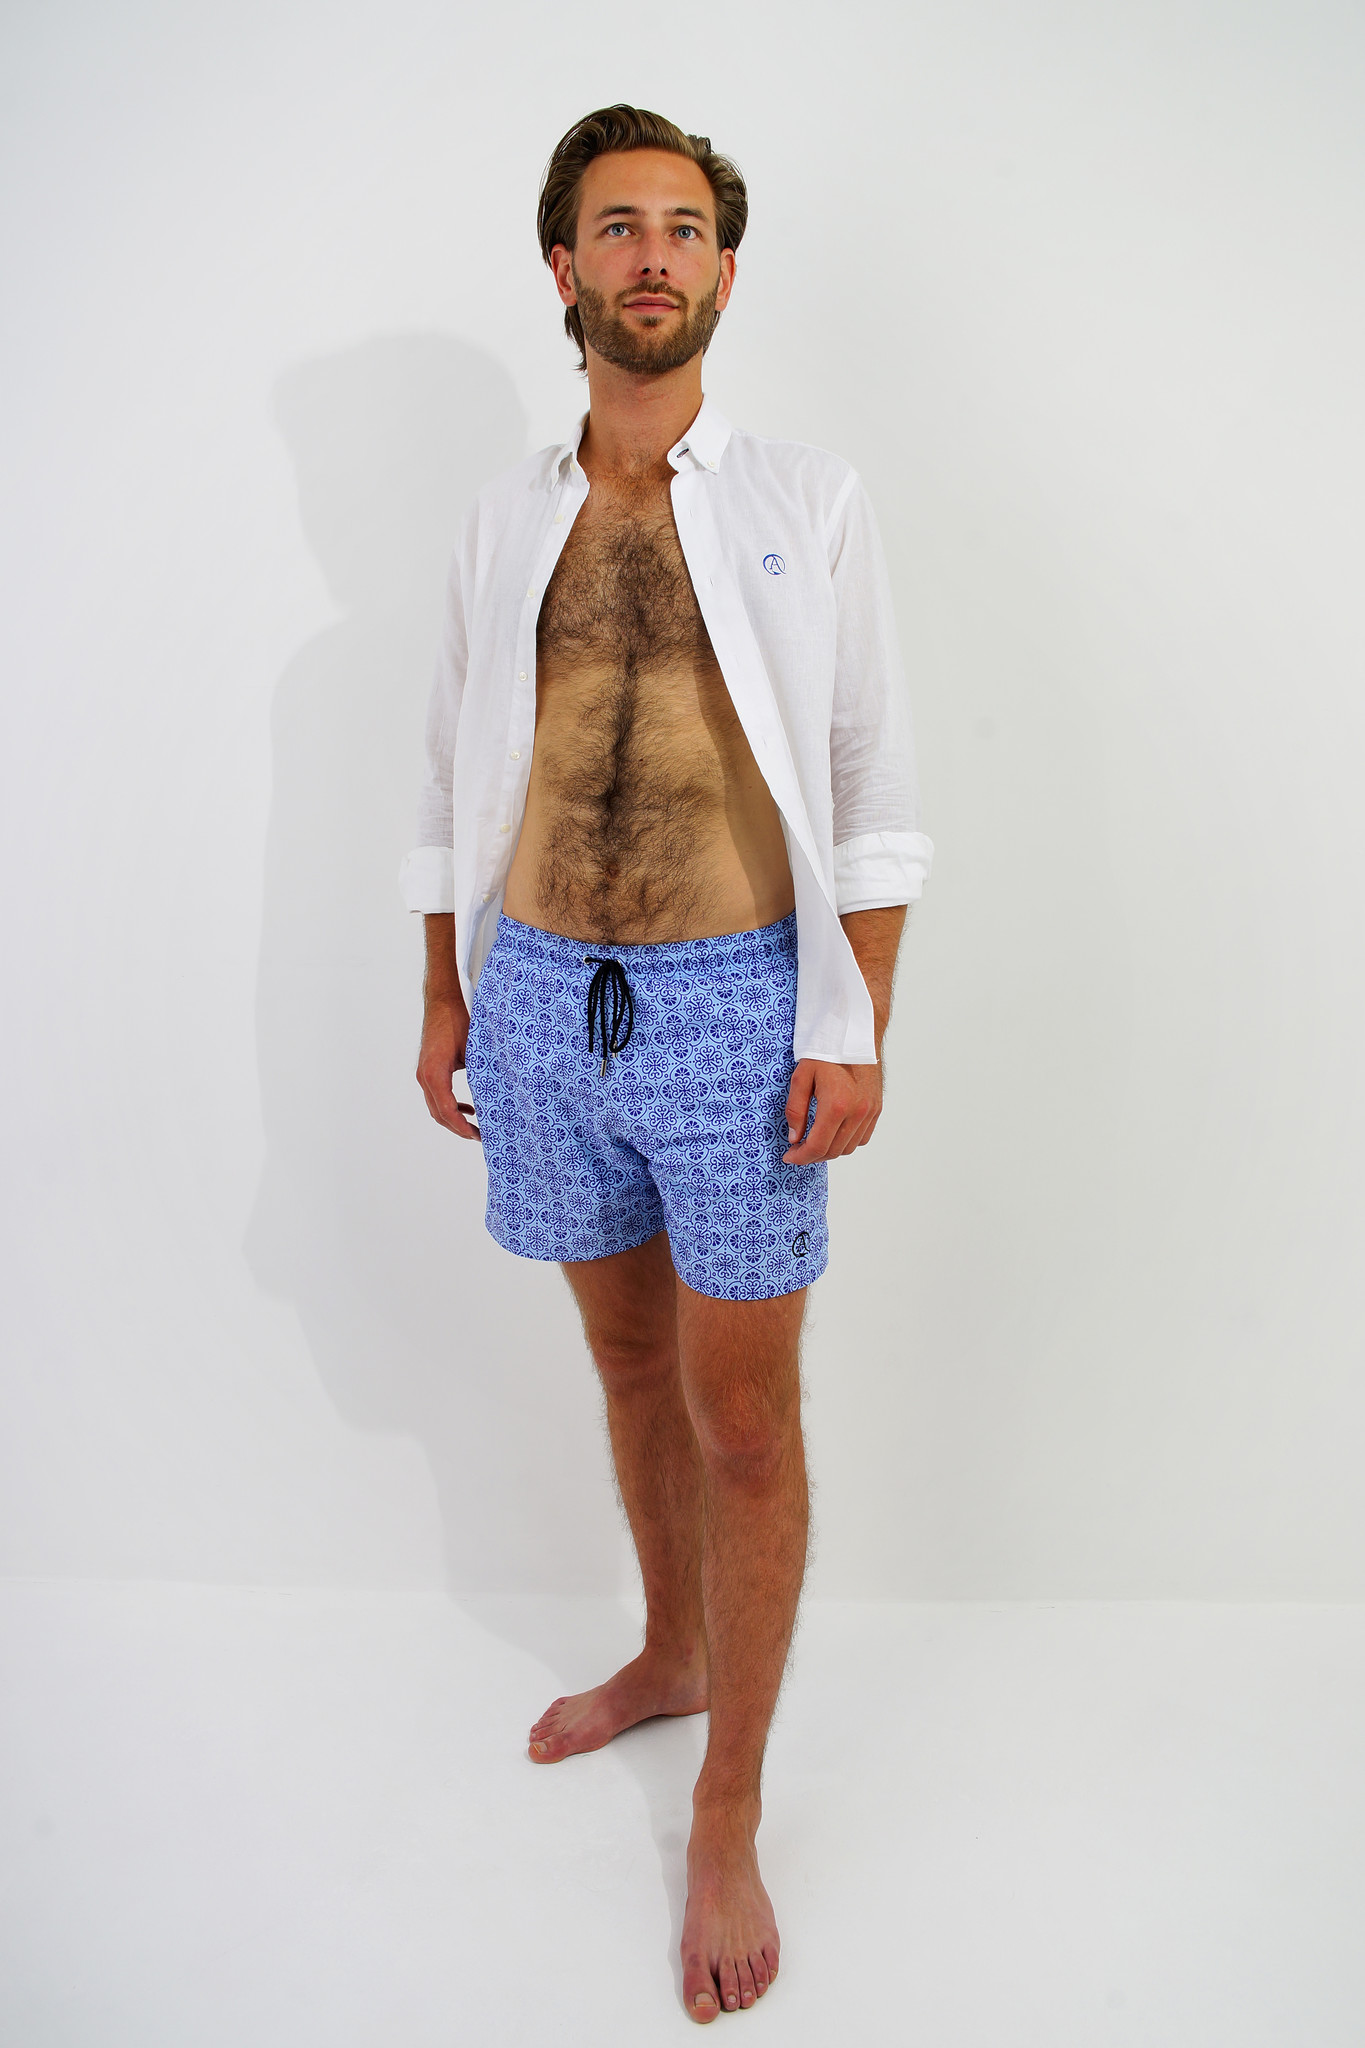 Arpione A 100% recycled swimshort for men